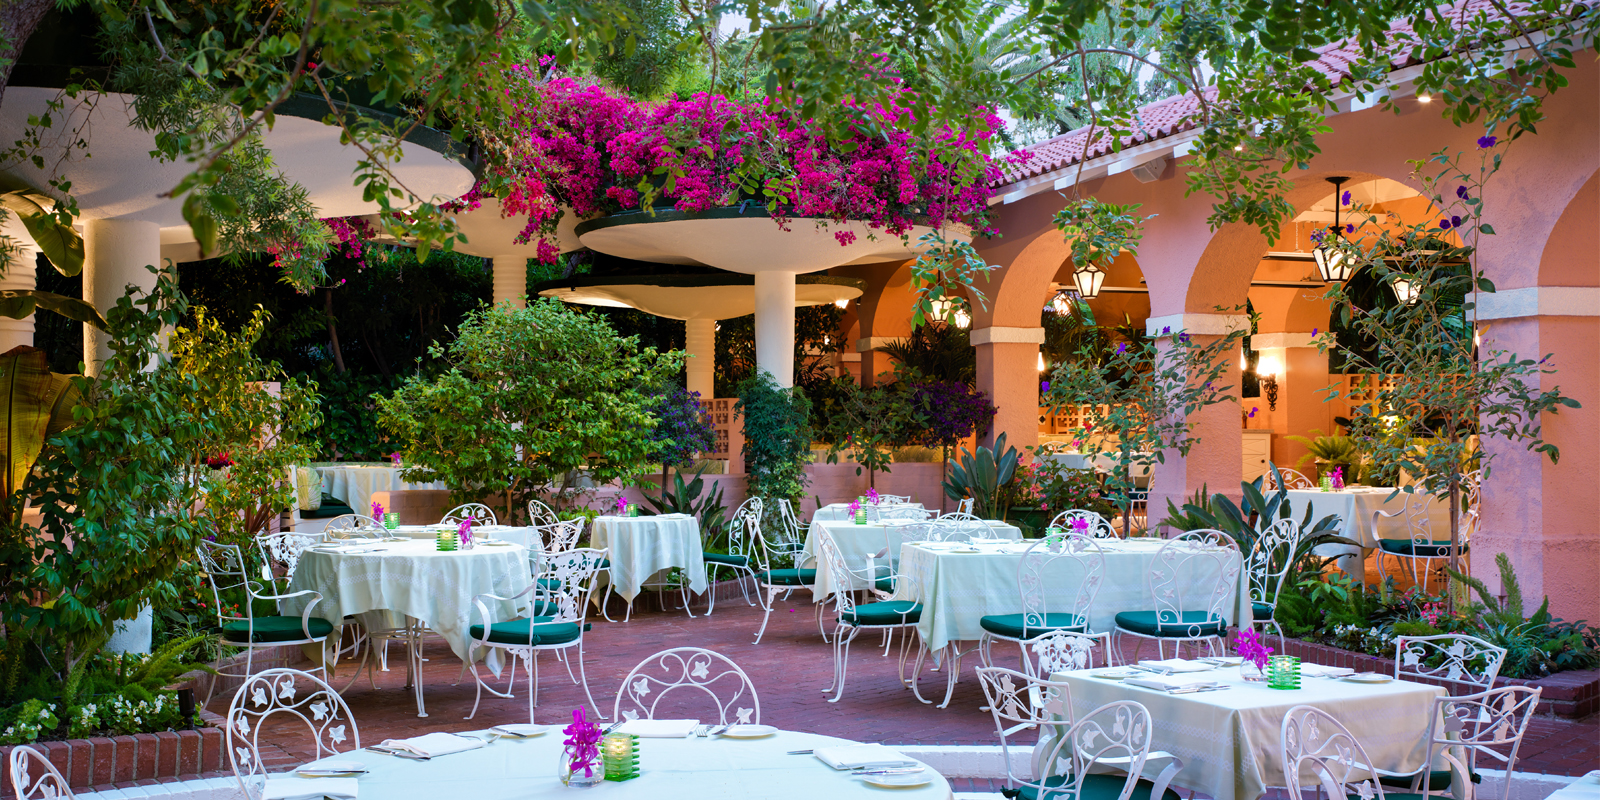 polo-lounge-patio-beverly-hills-hotel-dorchester-collection